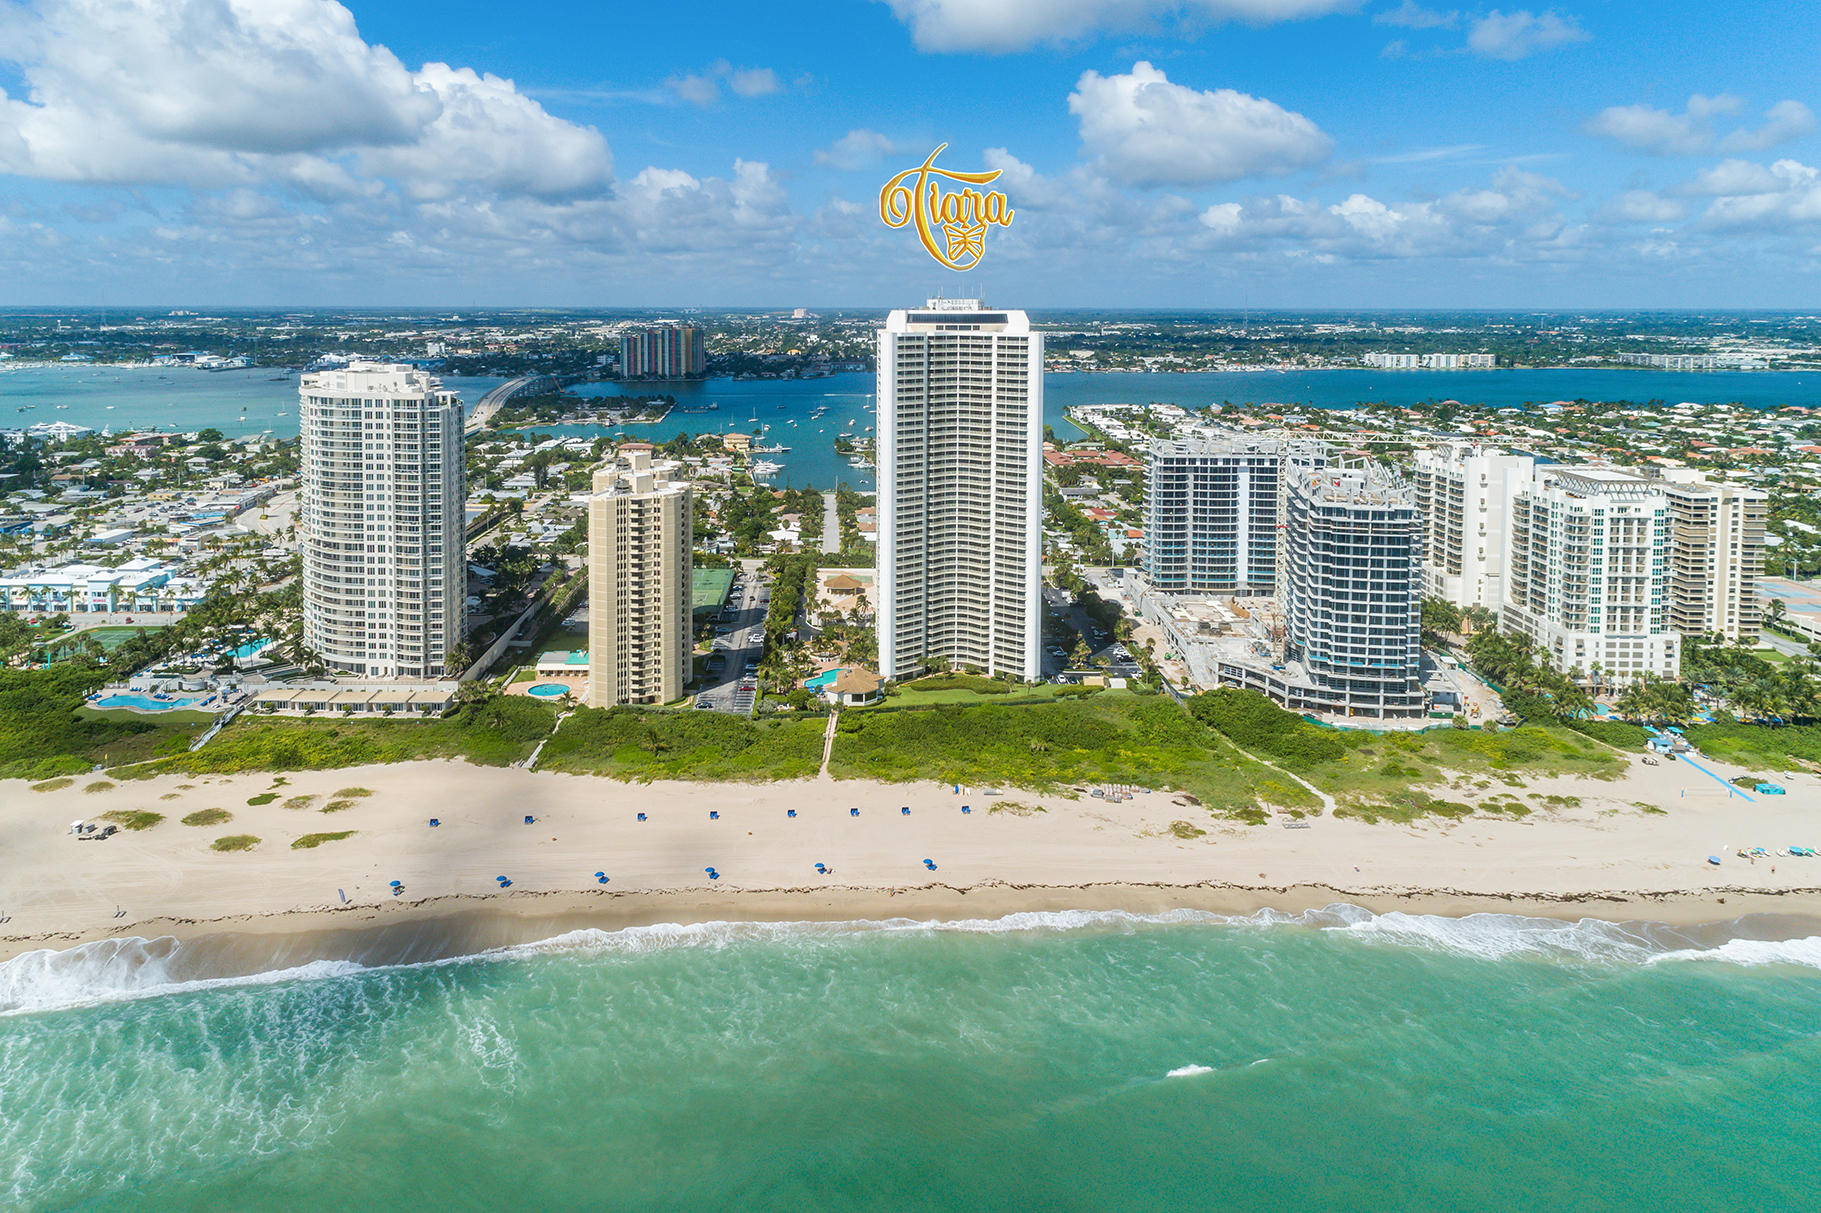 New Home for sale at 3000 North Ocean  in Singer Island